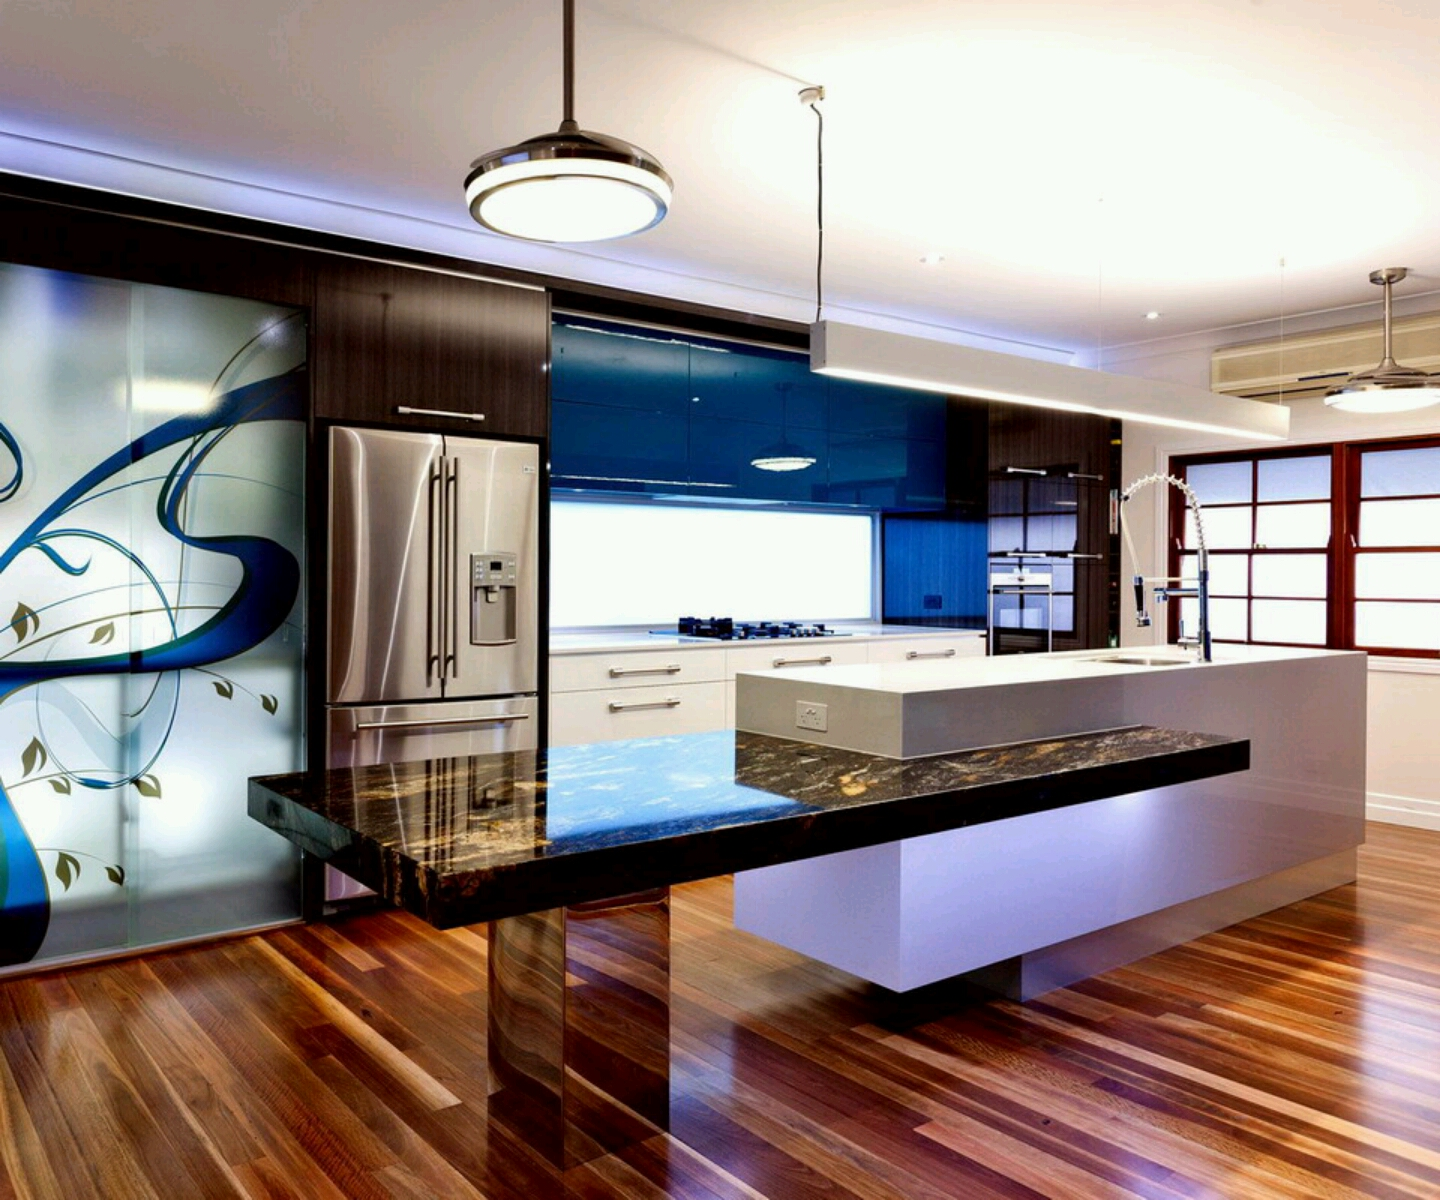 New Home Designs Latest Modern Interior Decoration: 25 Kitchen Design Inspiration Ideas